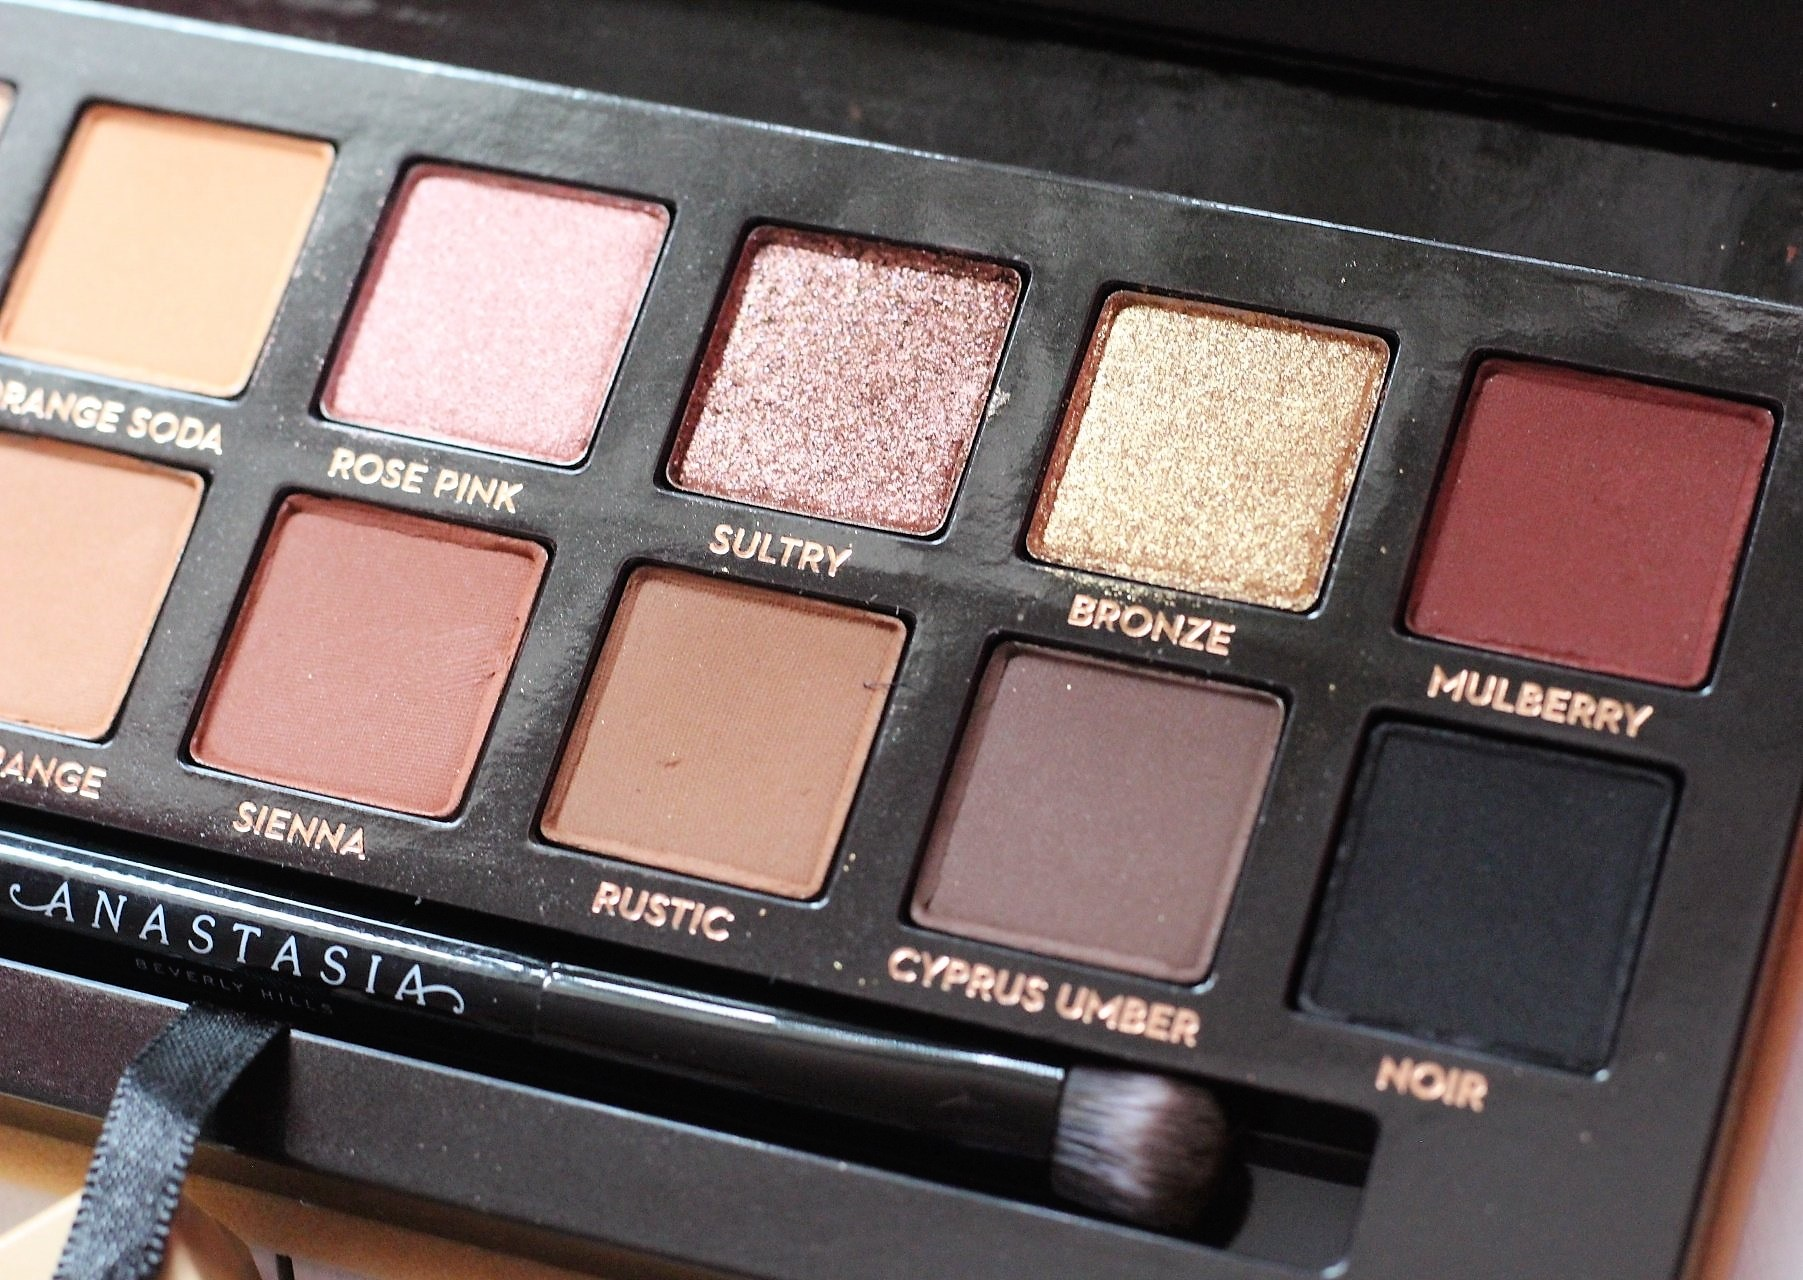 Anastasia Beverly Hills Soft Glam Eyeshadow Palette Review and Swatches 4 (2).jpeg